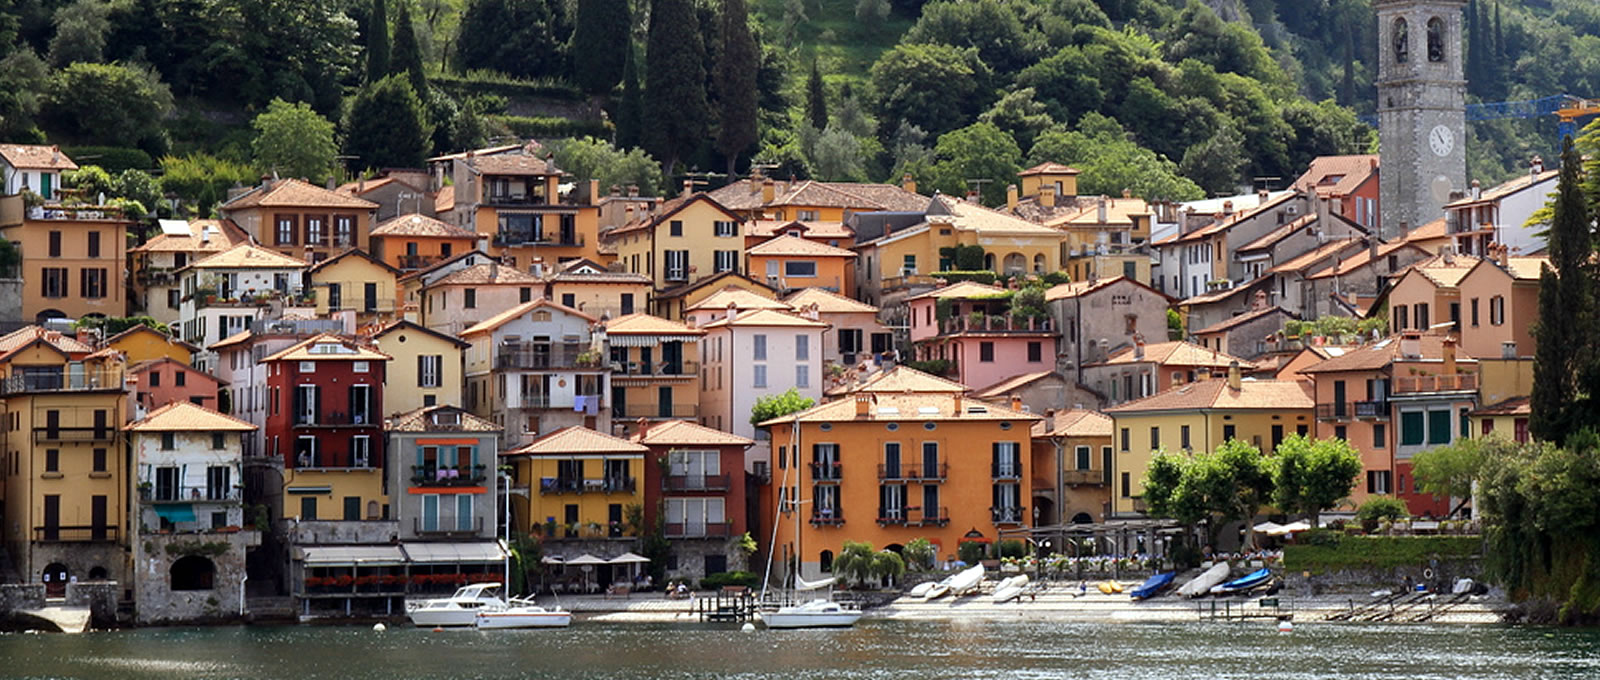 What to See in Varenna